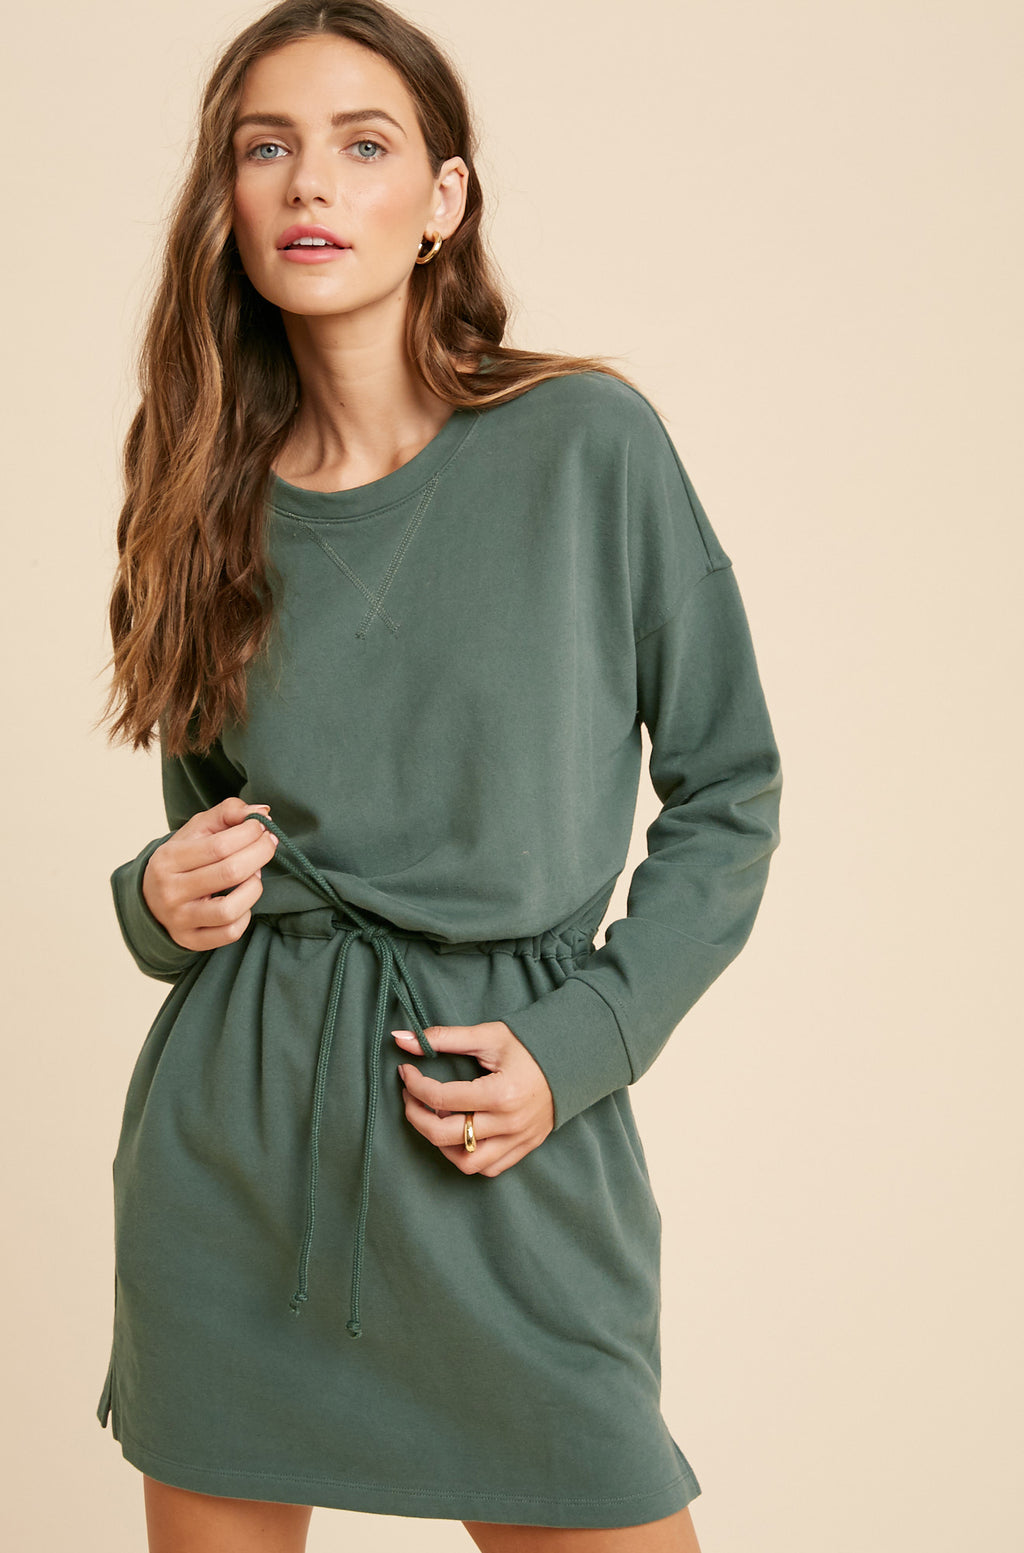 On The Go T-Shirt Dress - T. Green